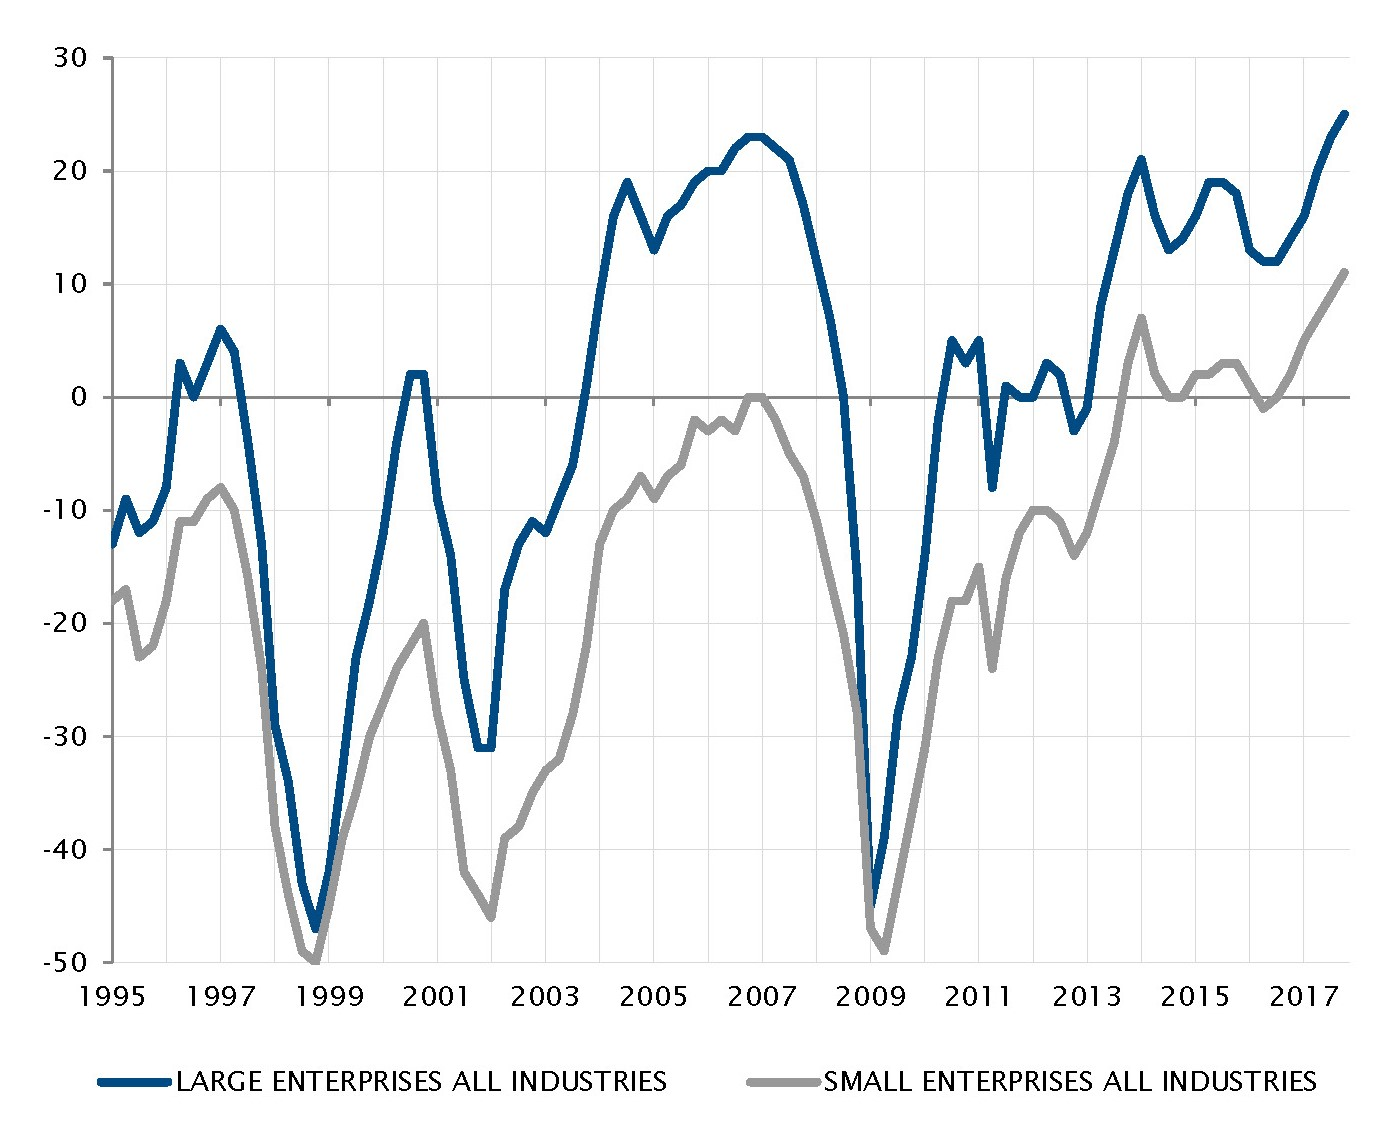 Business confidence runs high across all sectors and corporation sizes